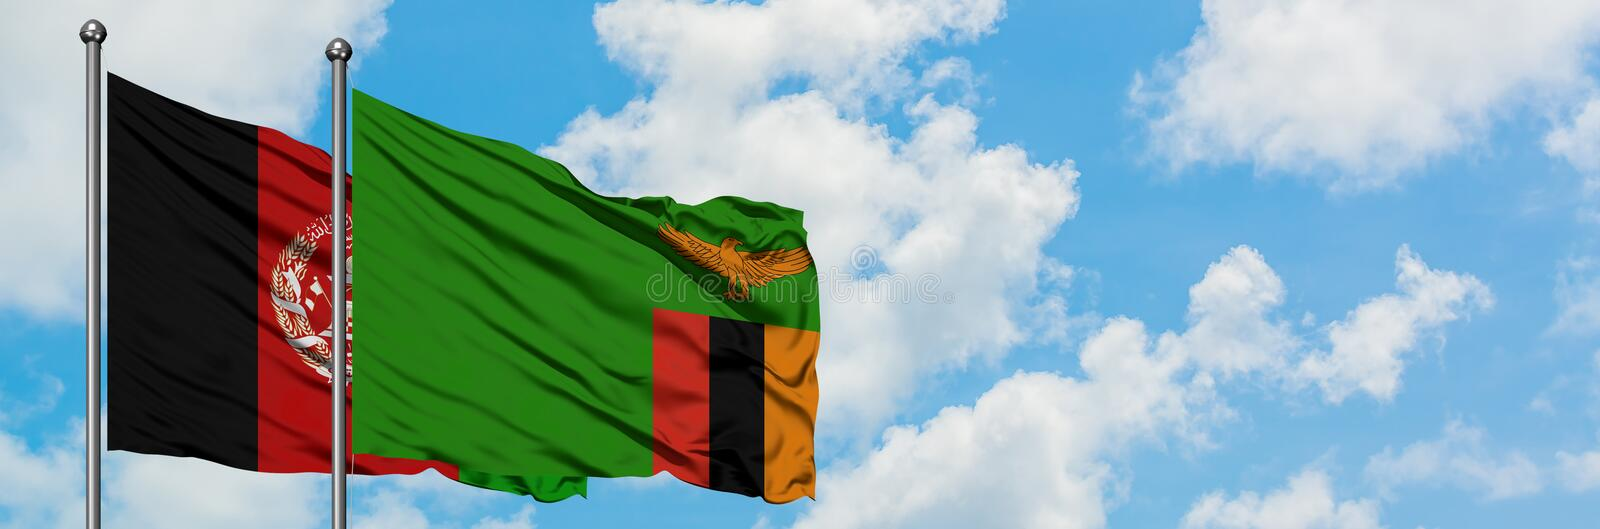 Afghanistan and Zambia flag waving in the wind against white cloudy blue sky together. Diplomacy concept, international relations.  stock photography